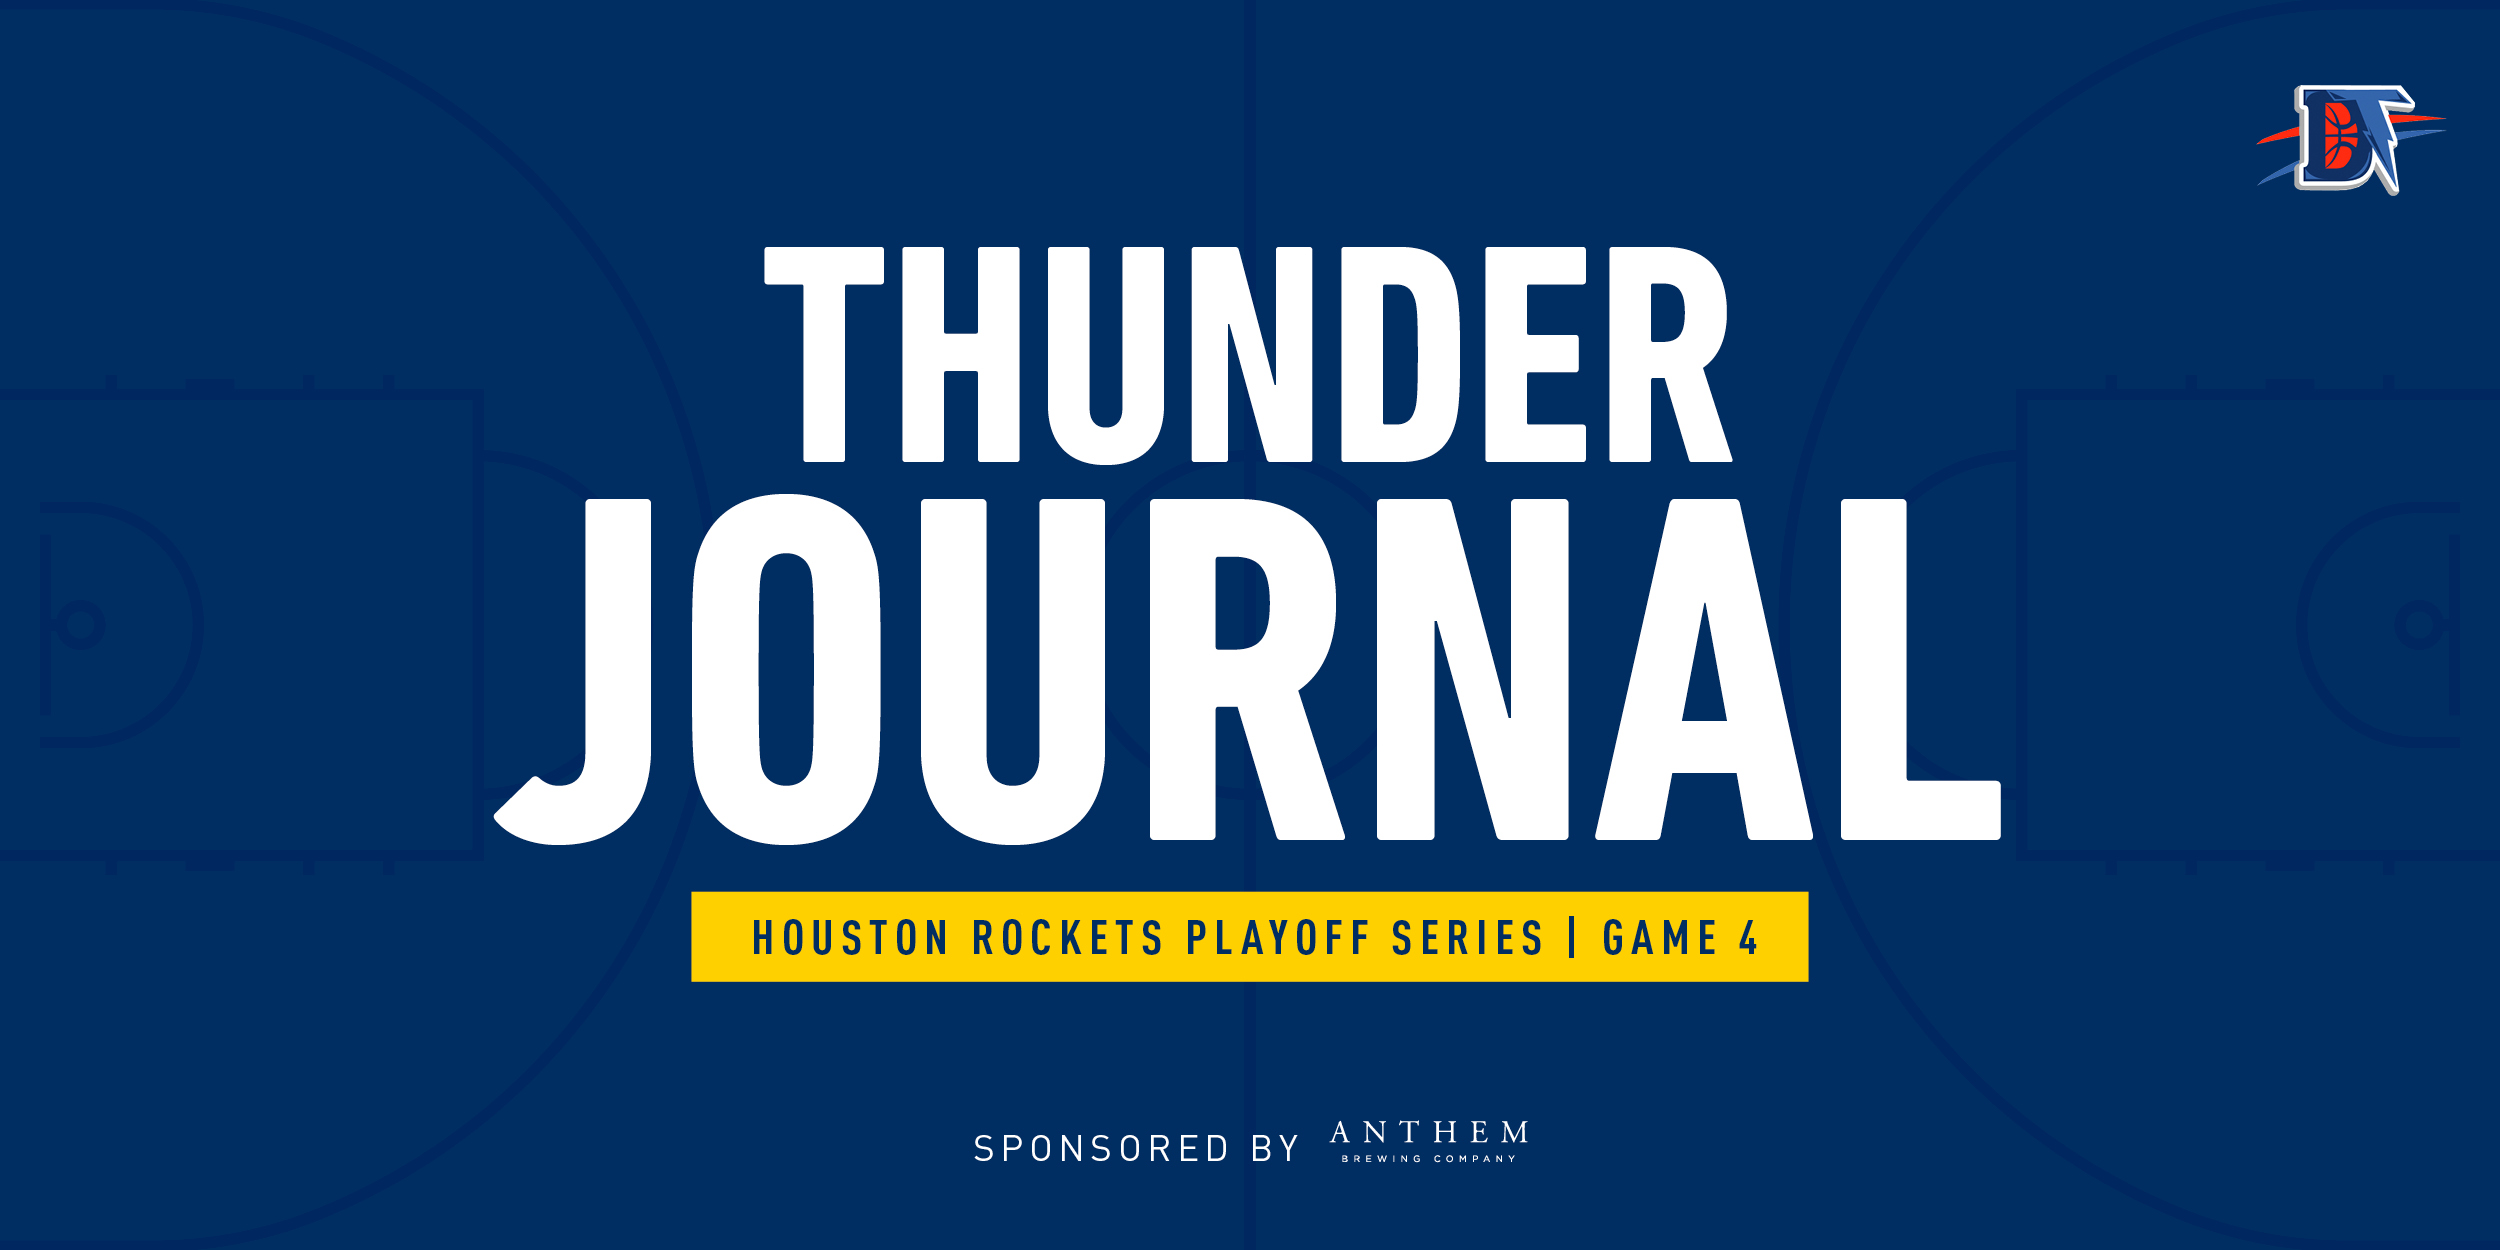 Thunder Journal: Thunder's Three Guards Greater Than Rockets Three Balls in 117-114 Game 4 Win.